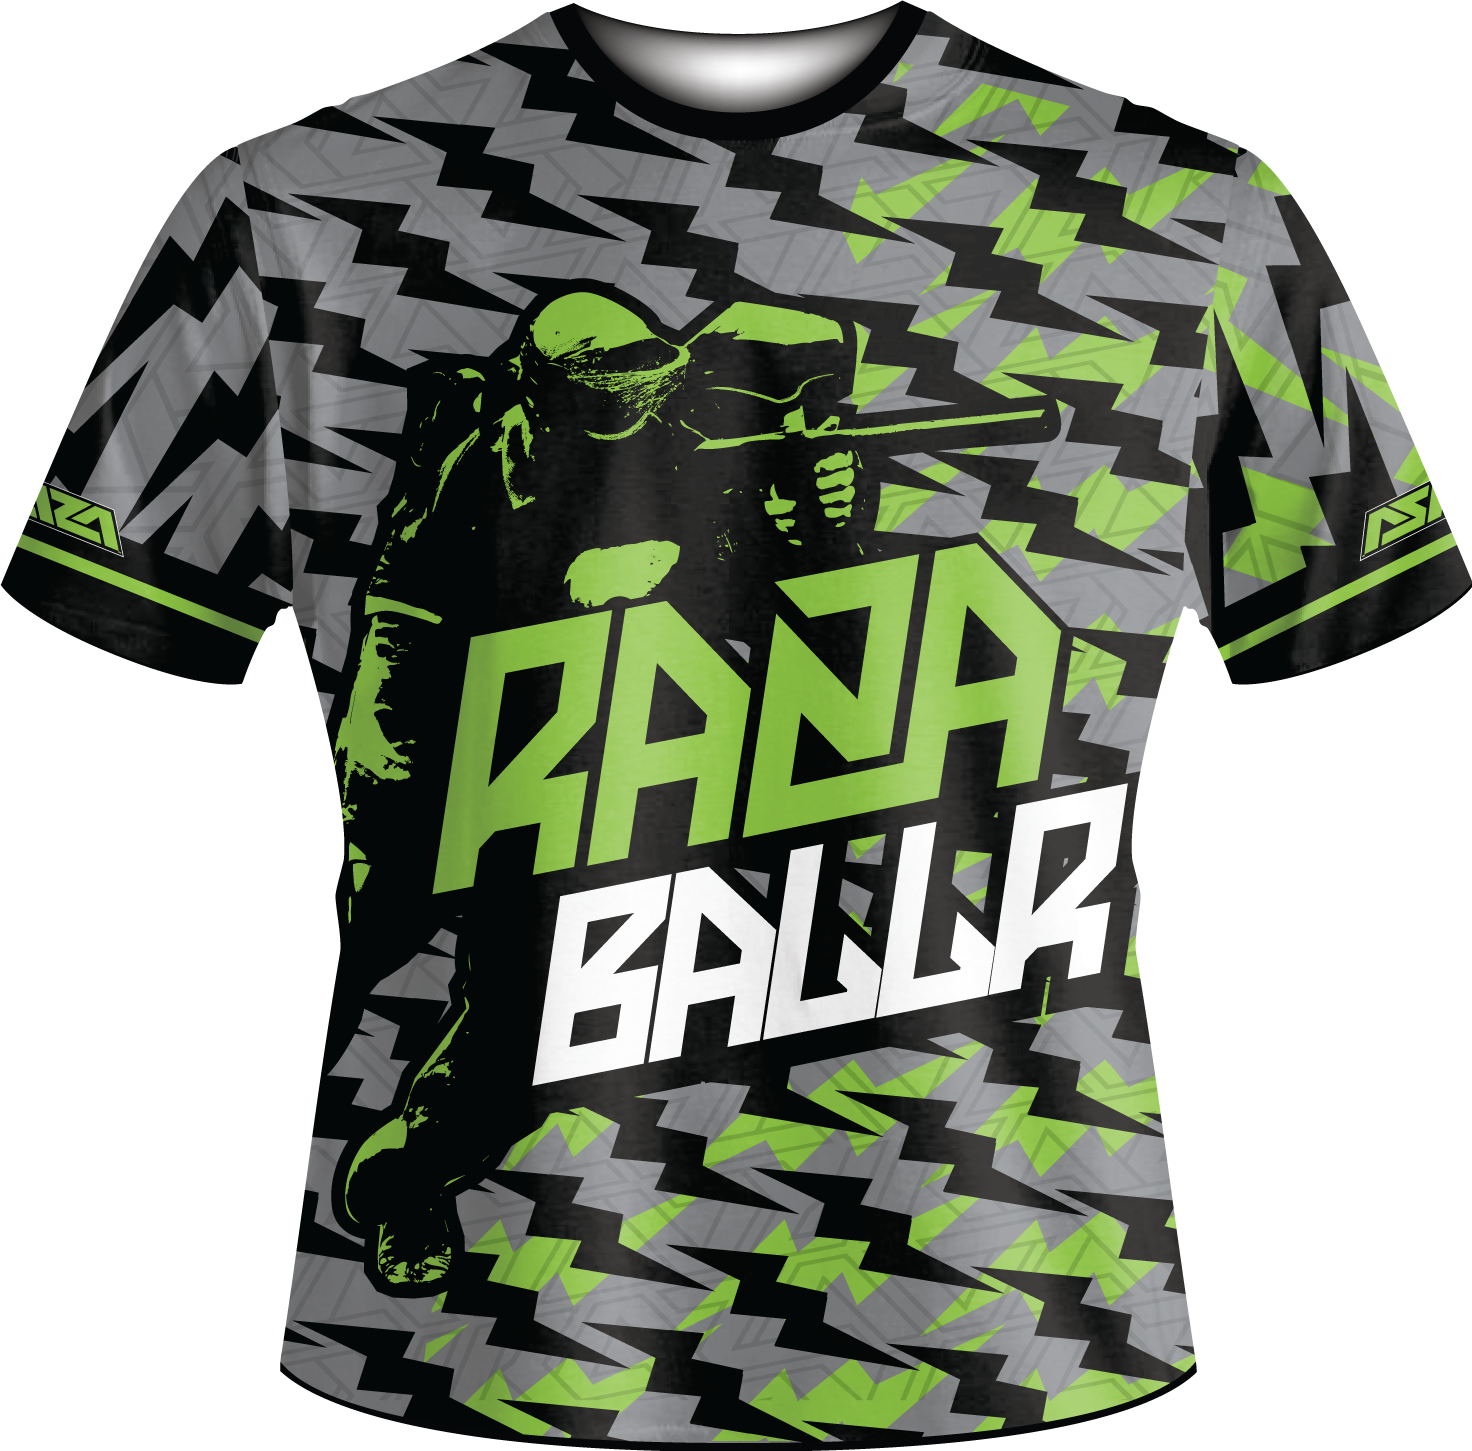 Baller Tech Shirt - RazaLife - Tech Shirt - Razalife - RazaLife - paintball - custom - jerseys - sports - uniforms - woodsball - softball - baseball - basketball - soccer